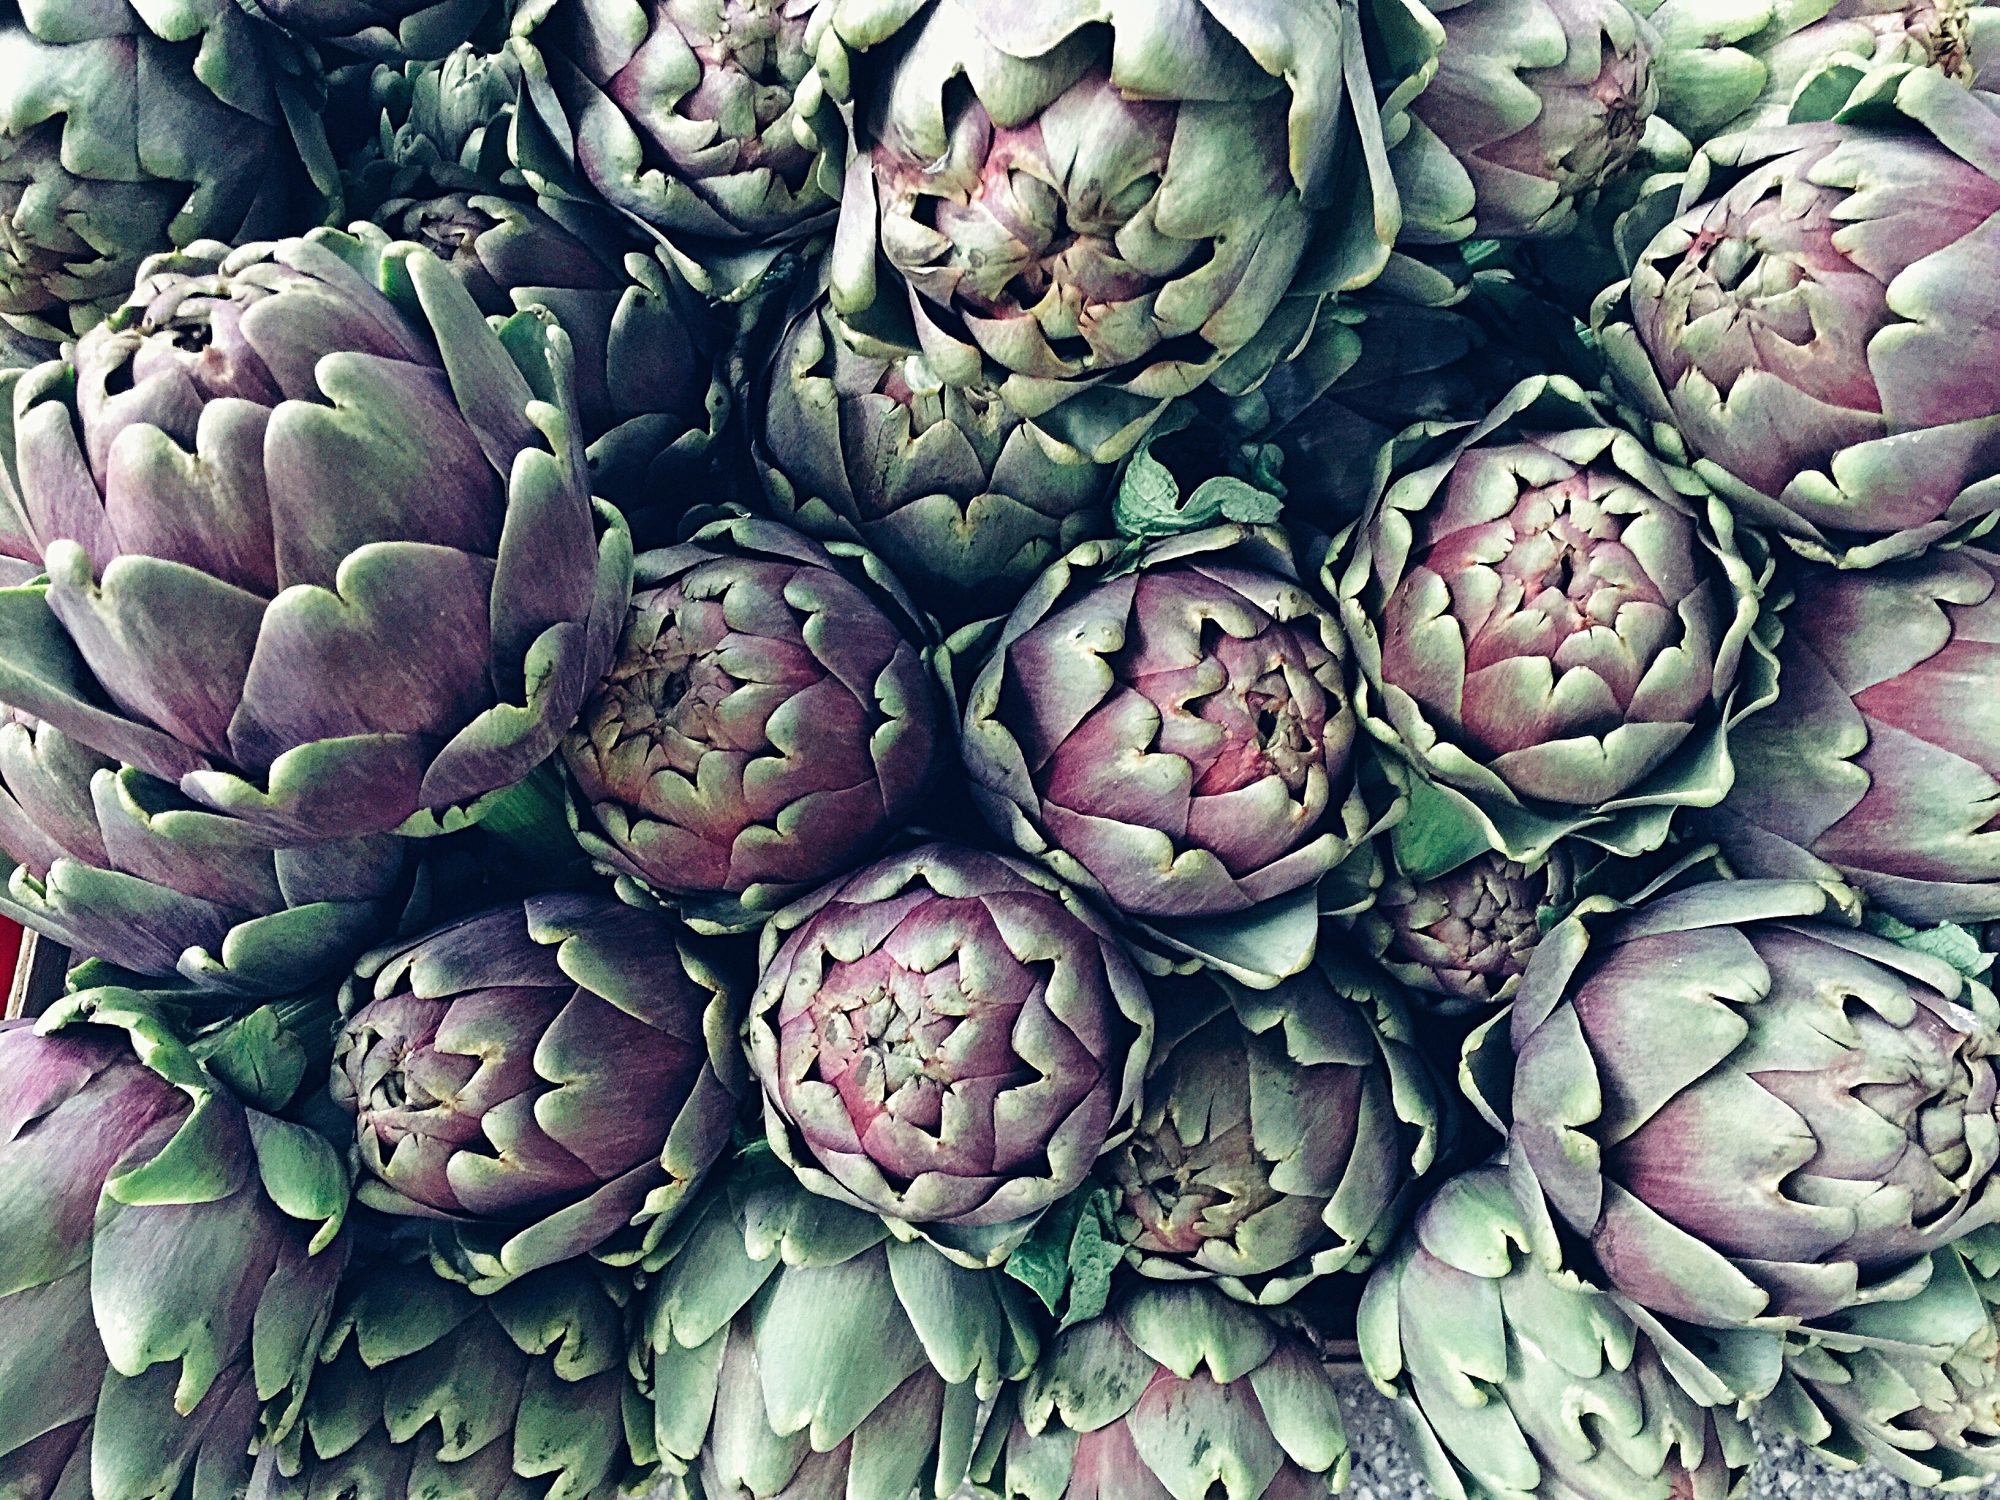 Artichokes Getty 1/21/20